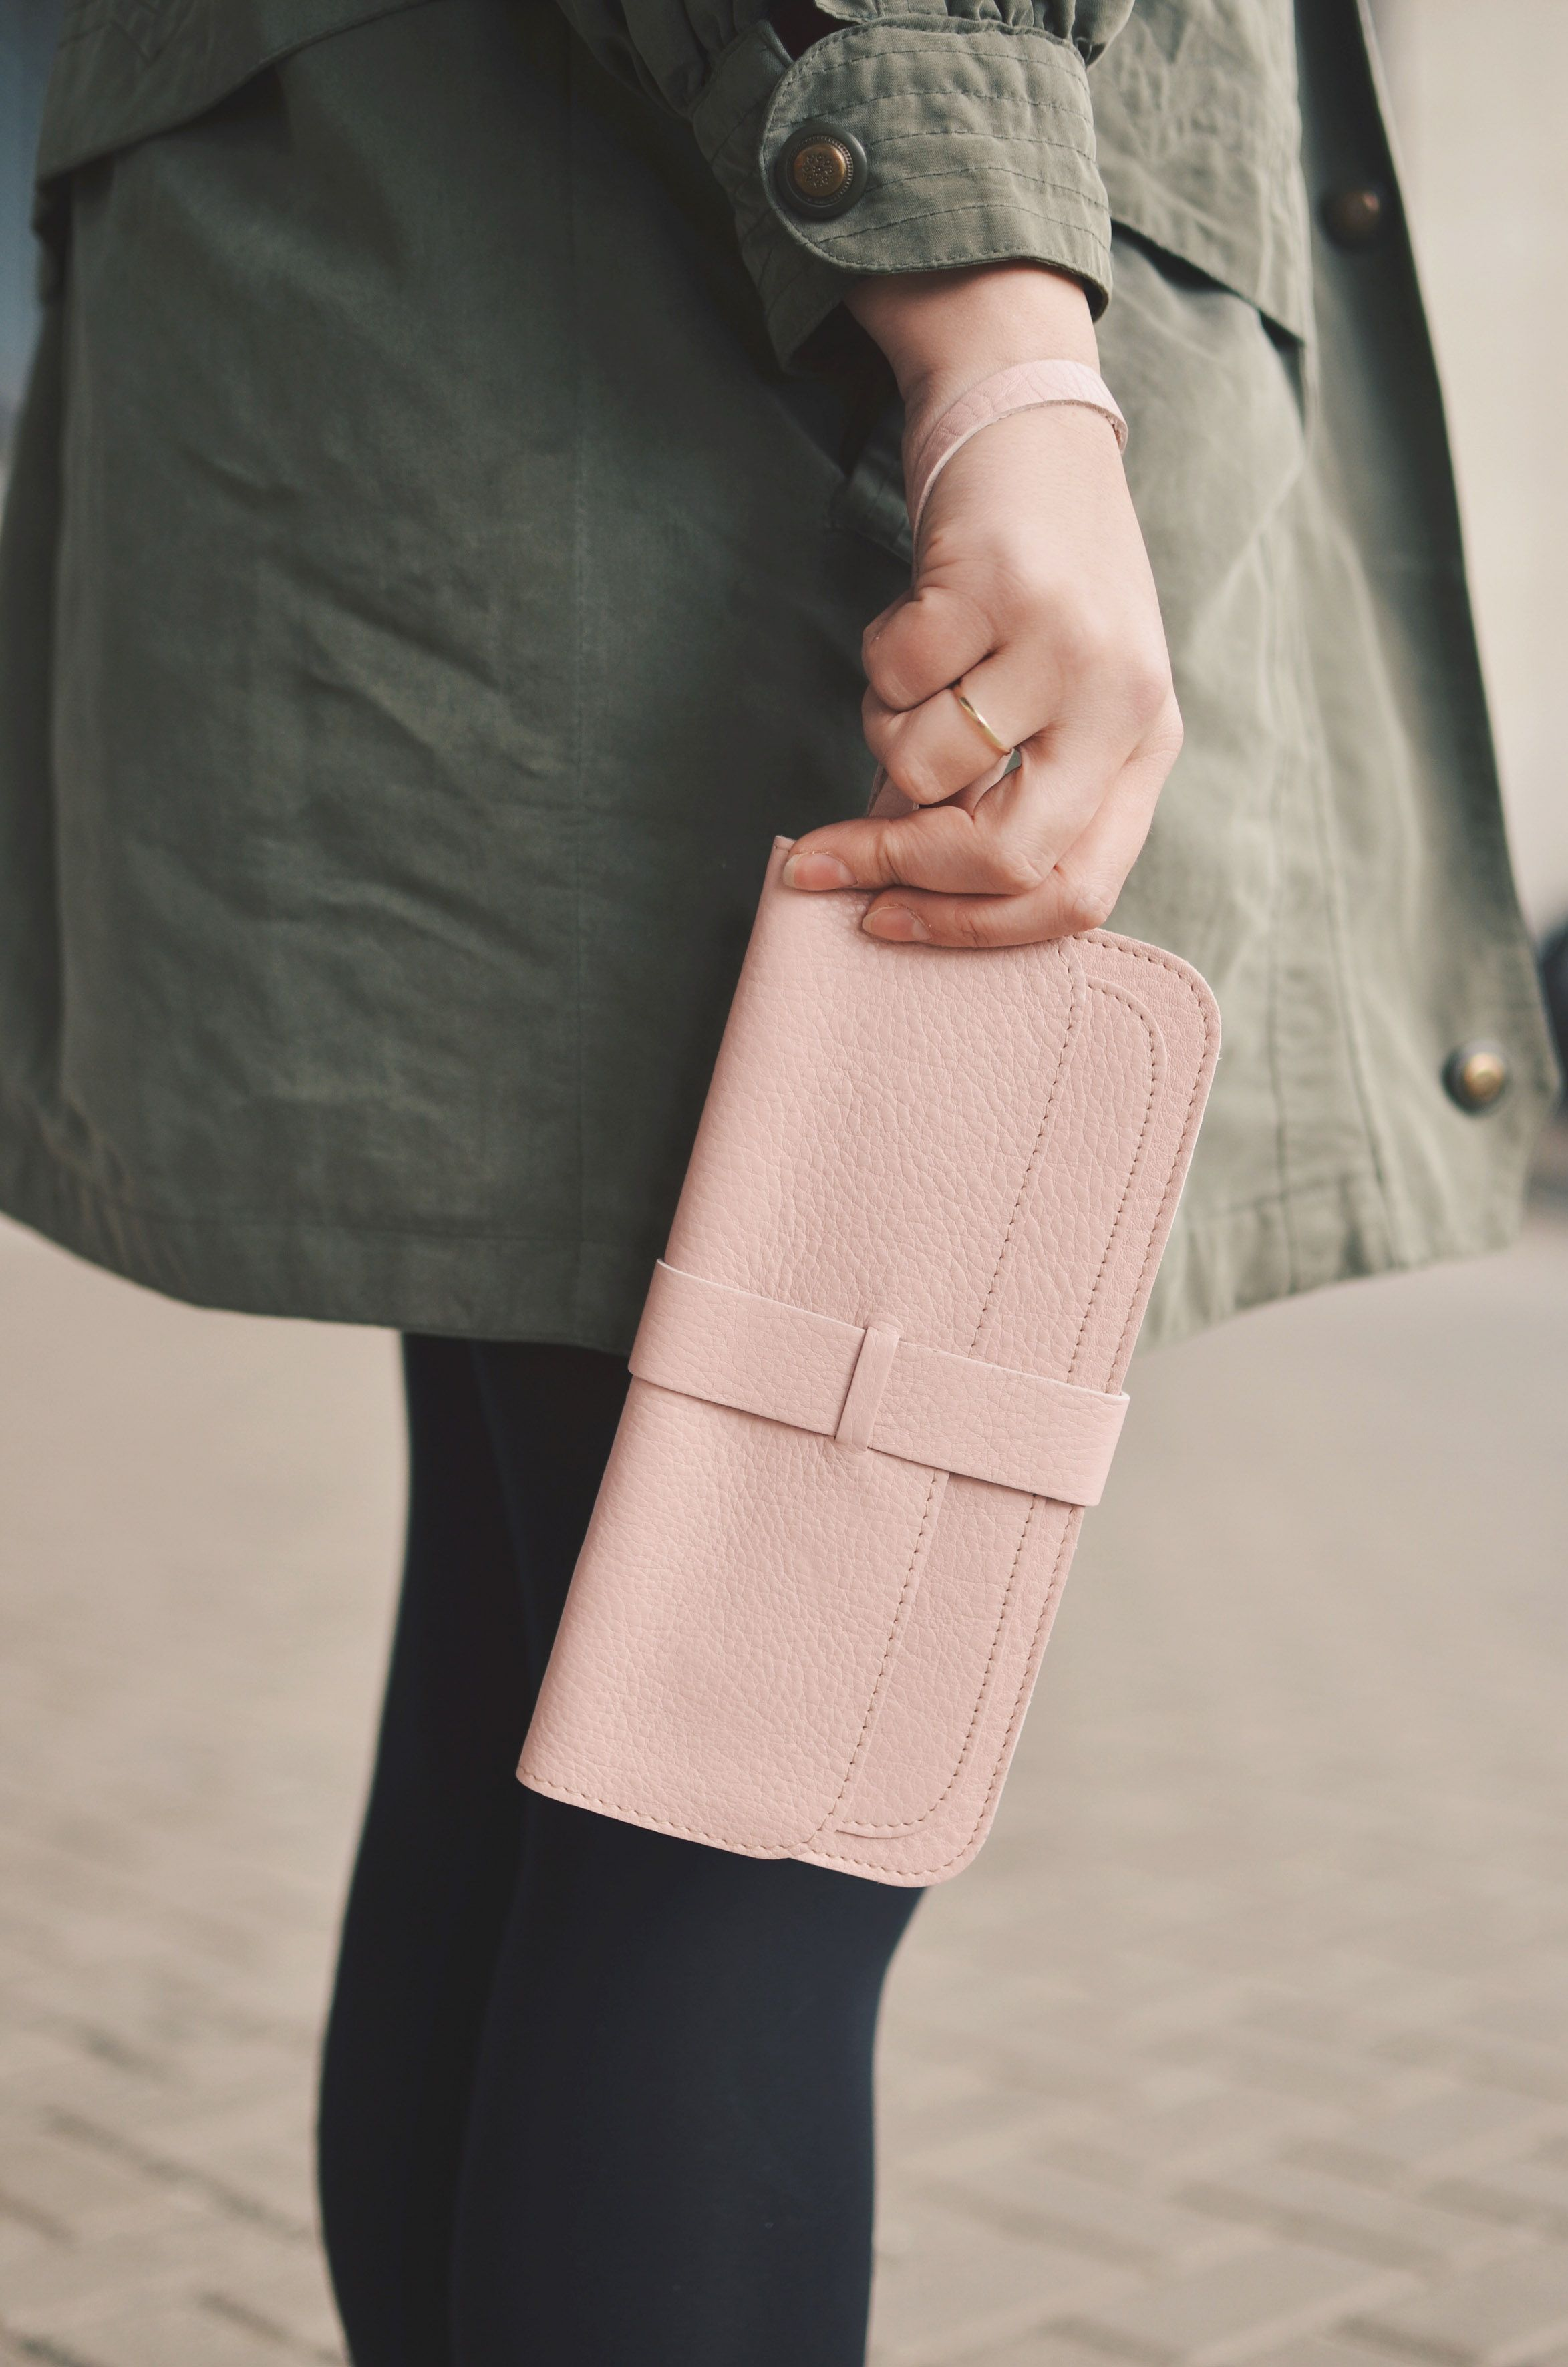 Keecie. Top secret leather clutch in the color soft pink